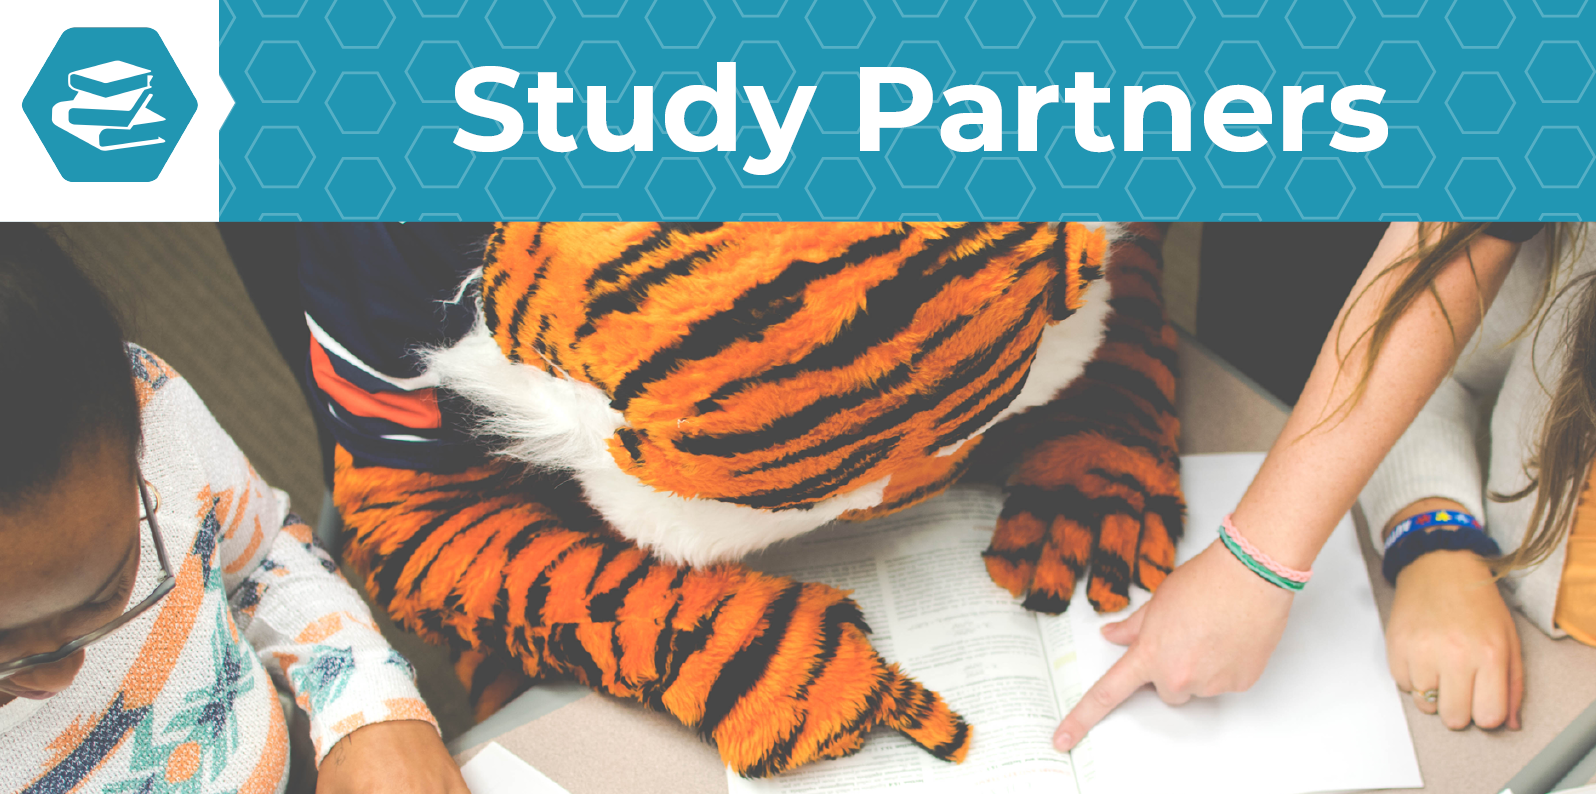 Study Partners - Webpage Header